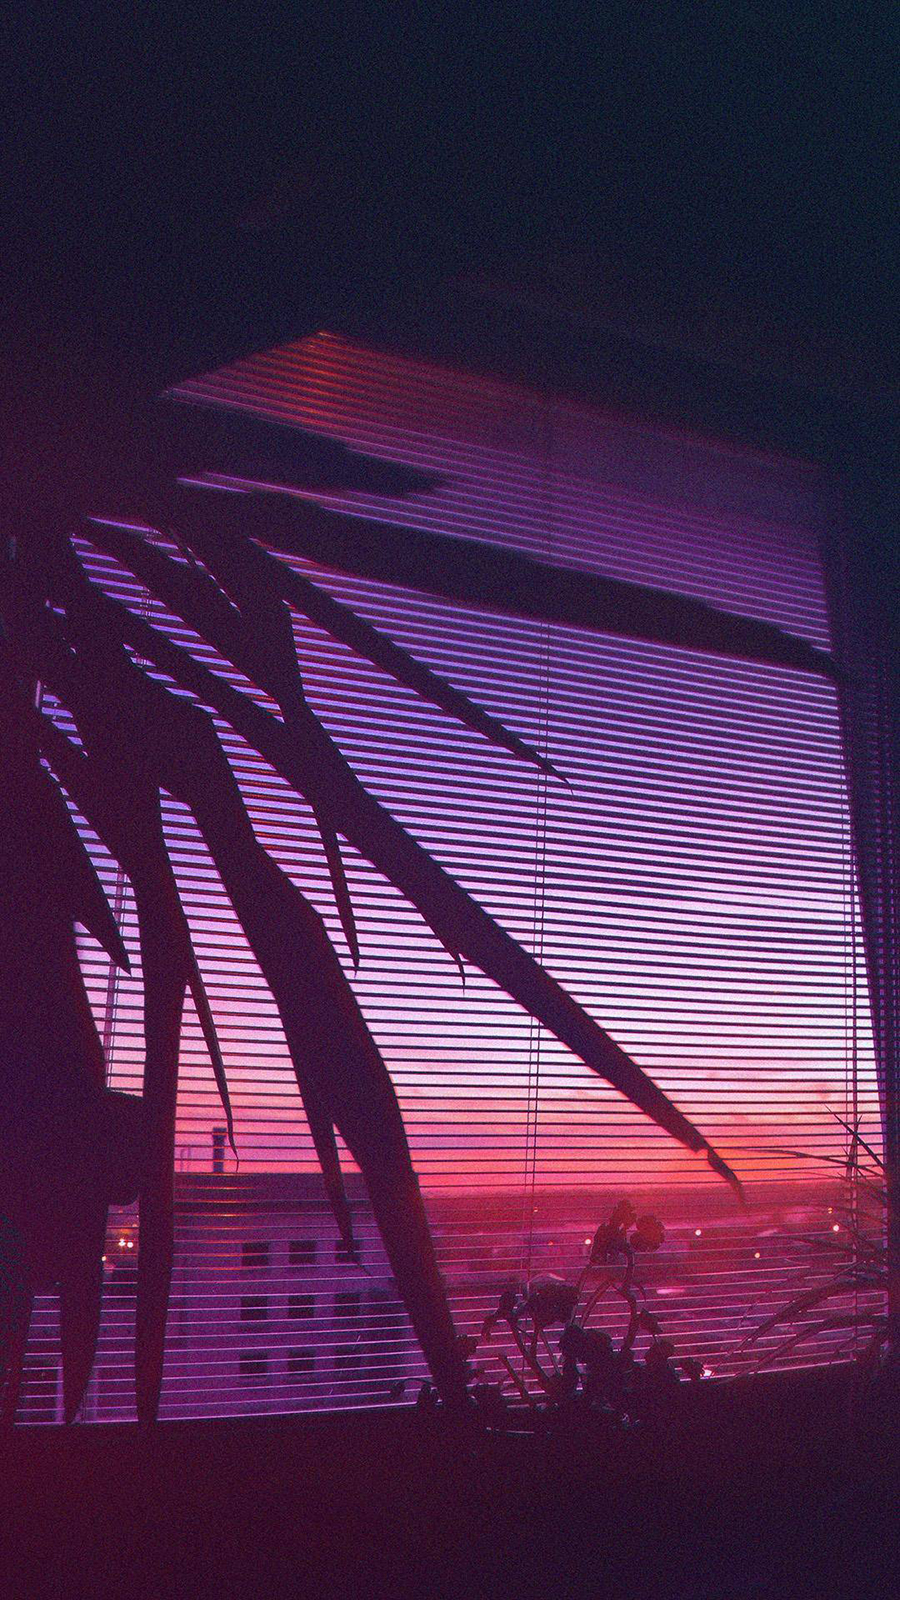 Retro Sunset Wallpapers Free Download For Your Device